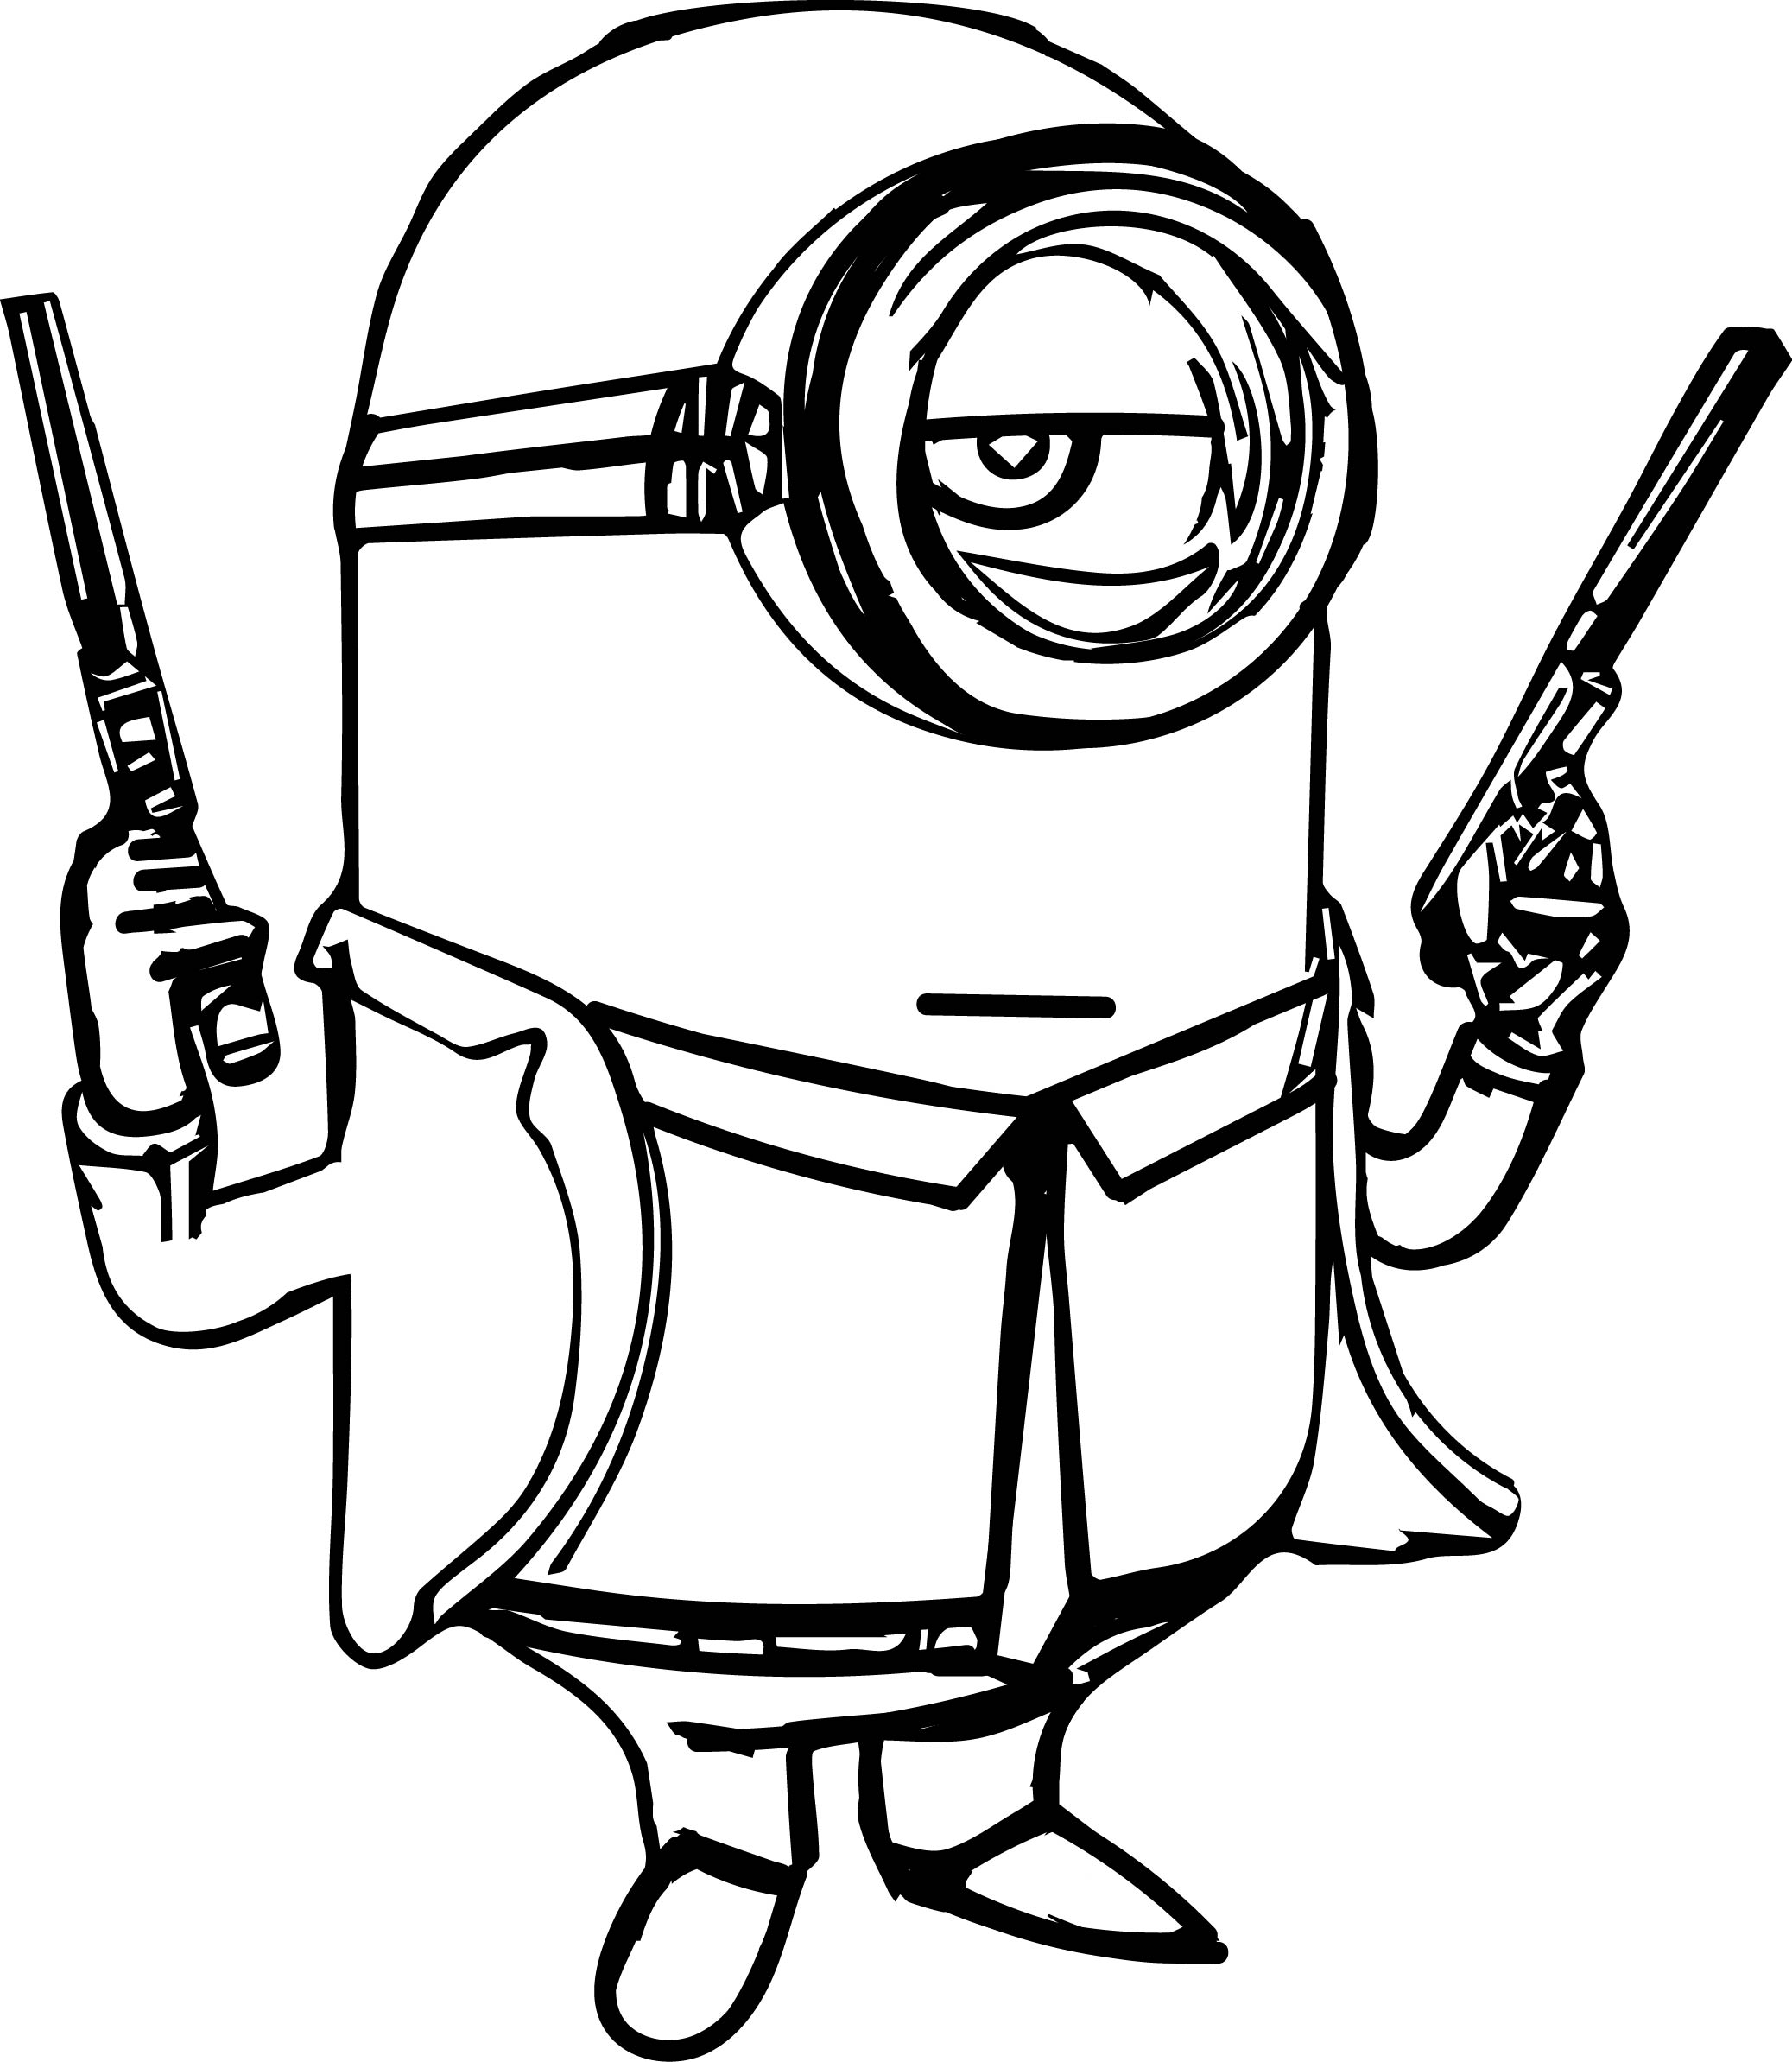 toy gun coloring pages 18 best coloring pages images on pinterest drawing ideas gun toy pages coloring